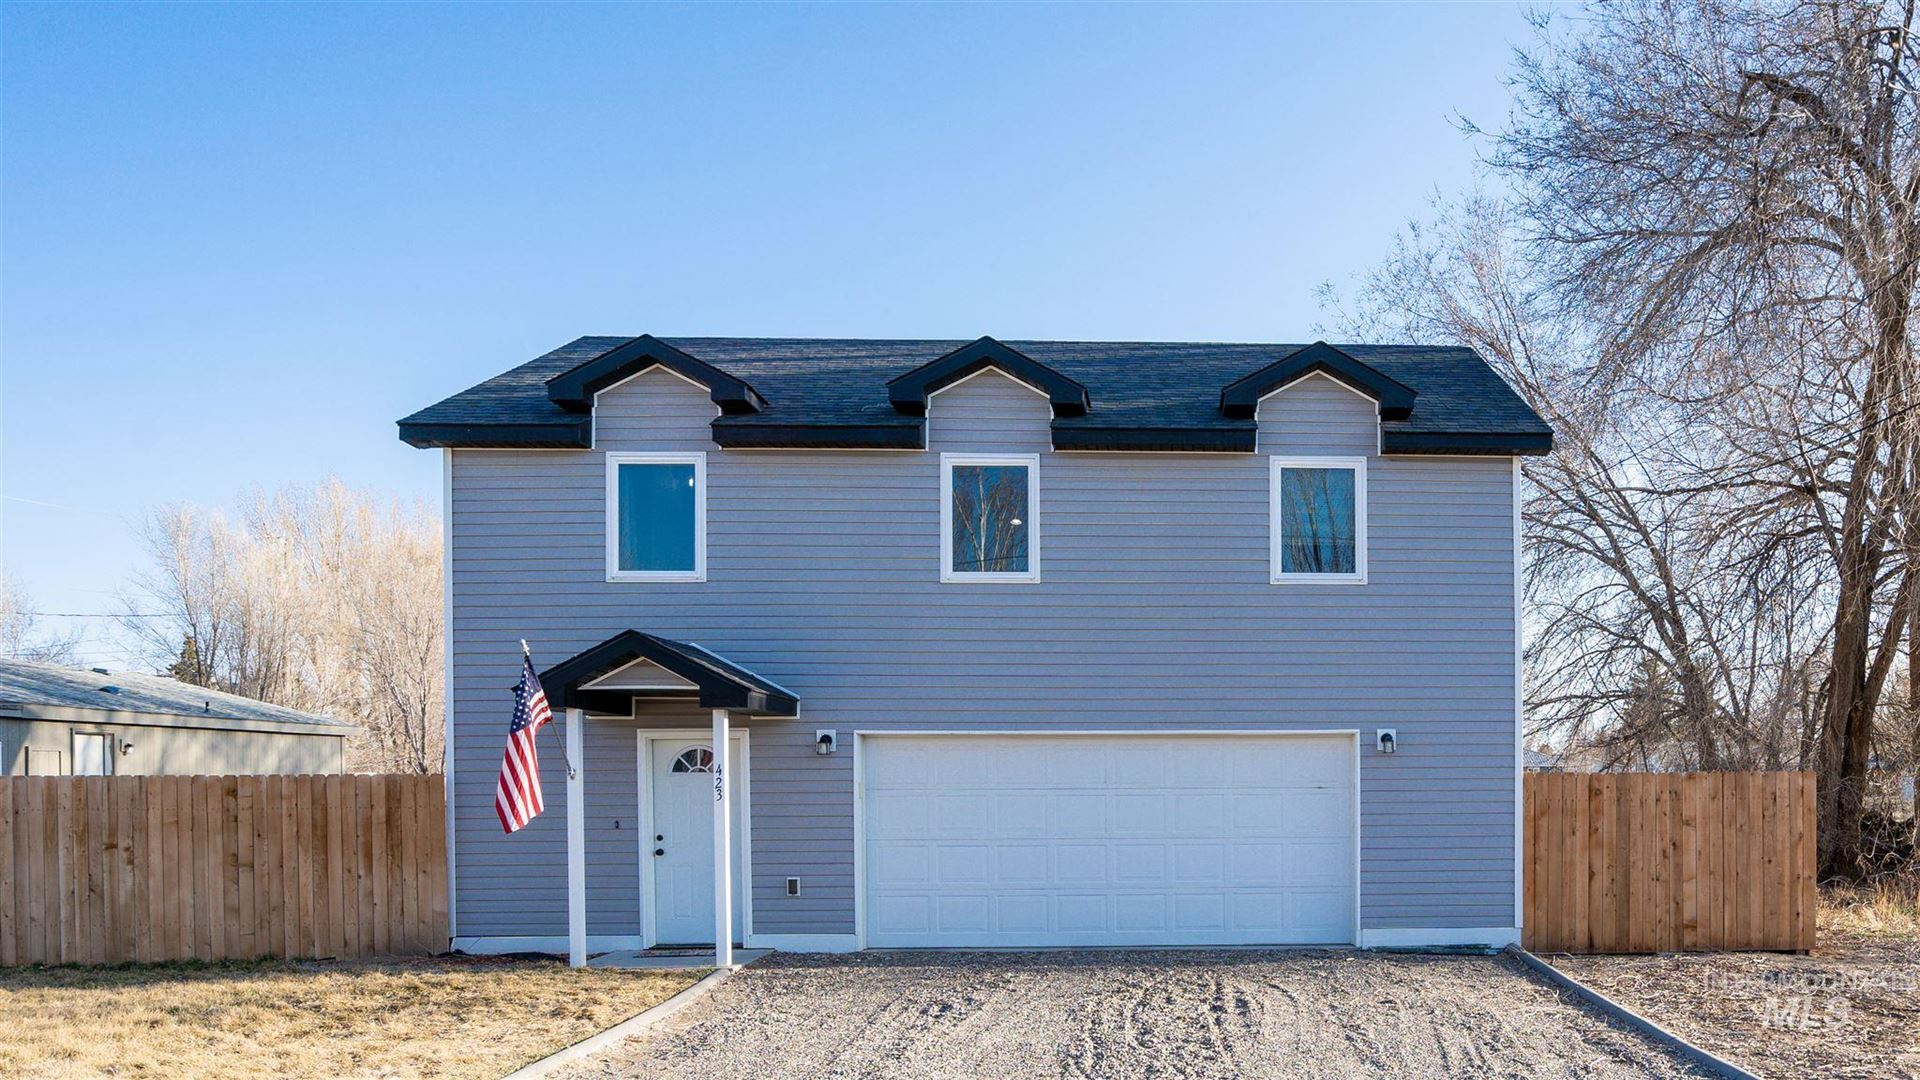 Photo of 423 16th Street, Rupert, ID 83350 (MLS # 98798019)